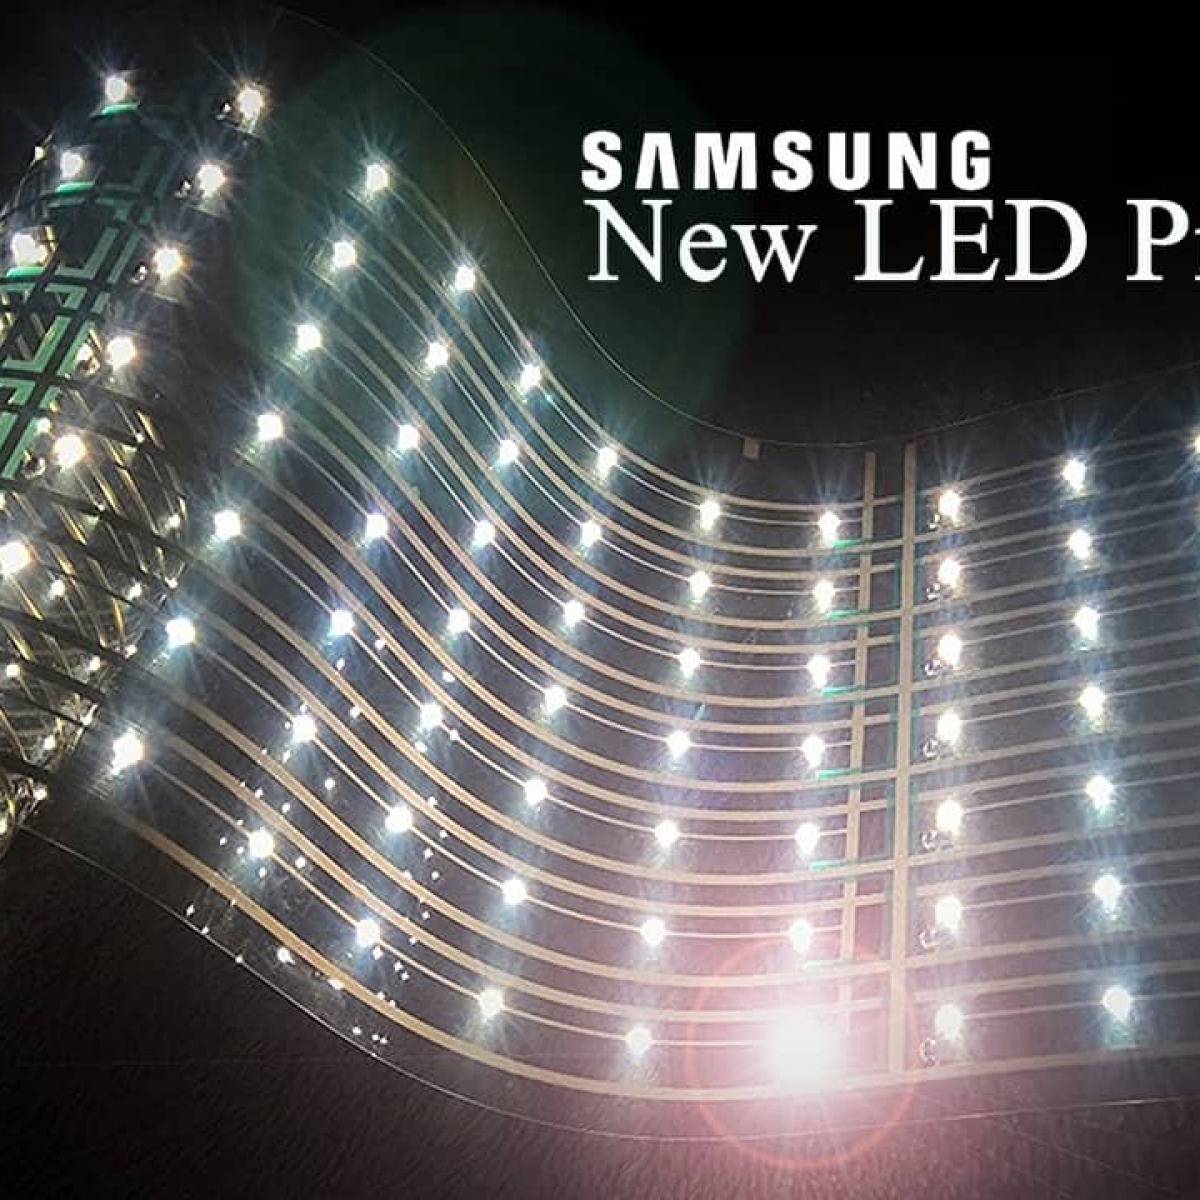 Samsung launches new LED products to improve circadian rhythm